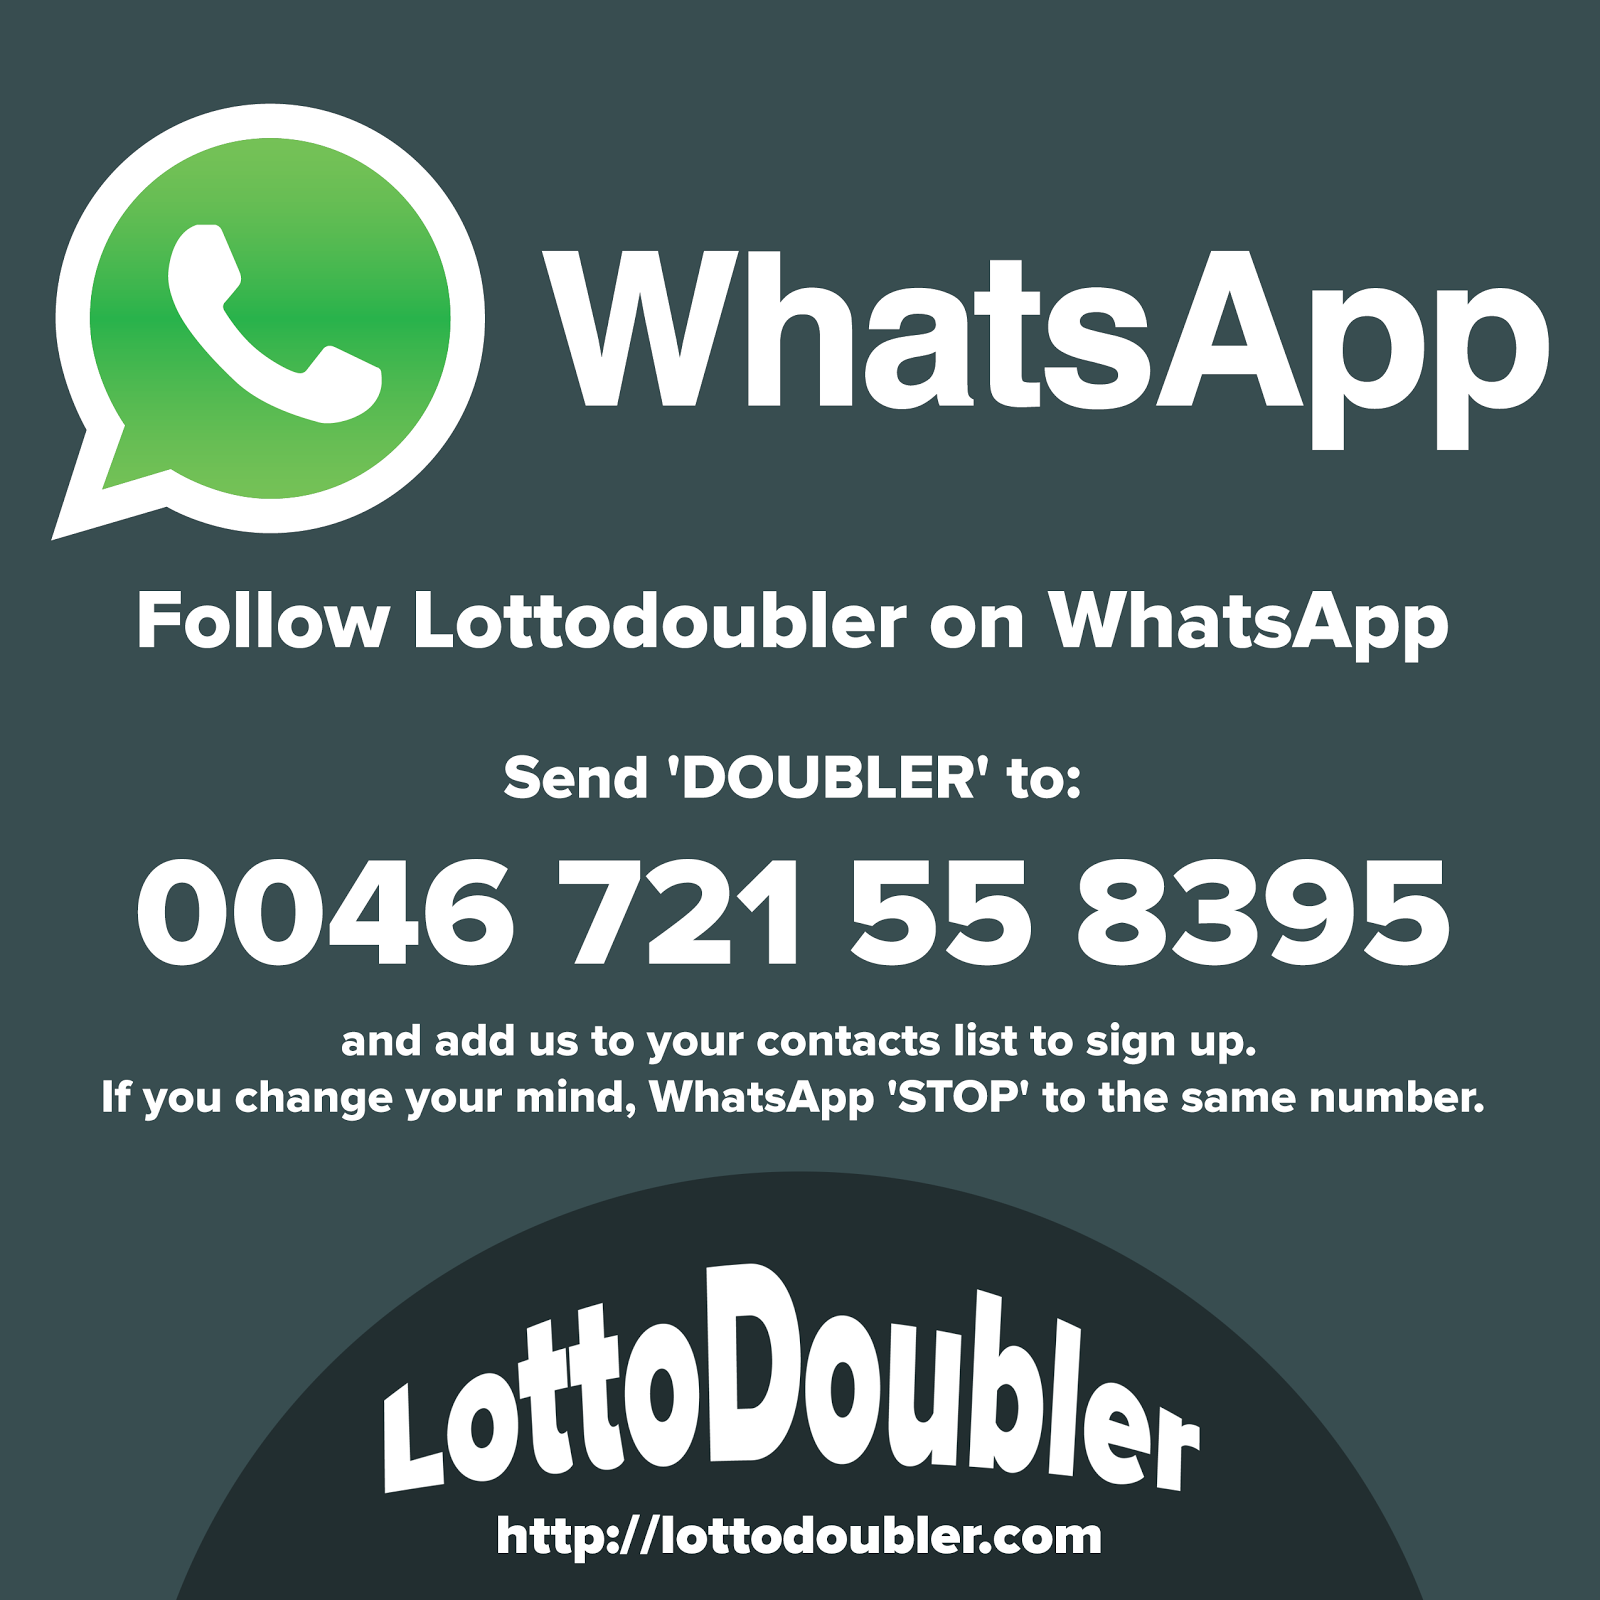 Follow Lottodoubler on WhatsApp.